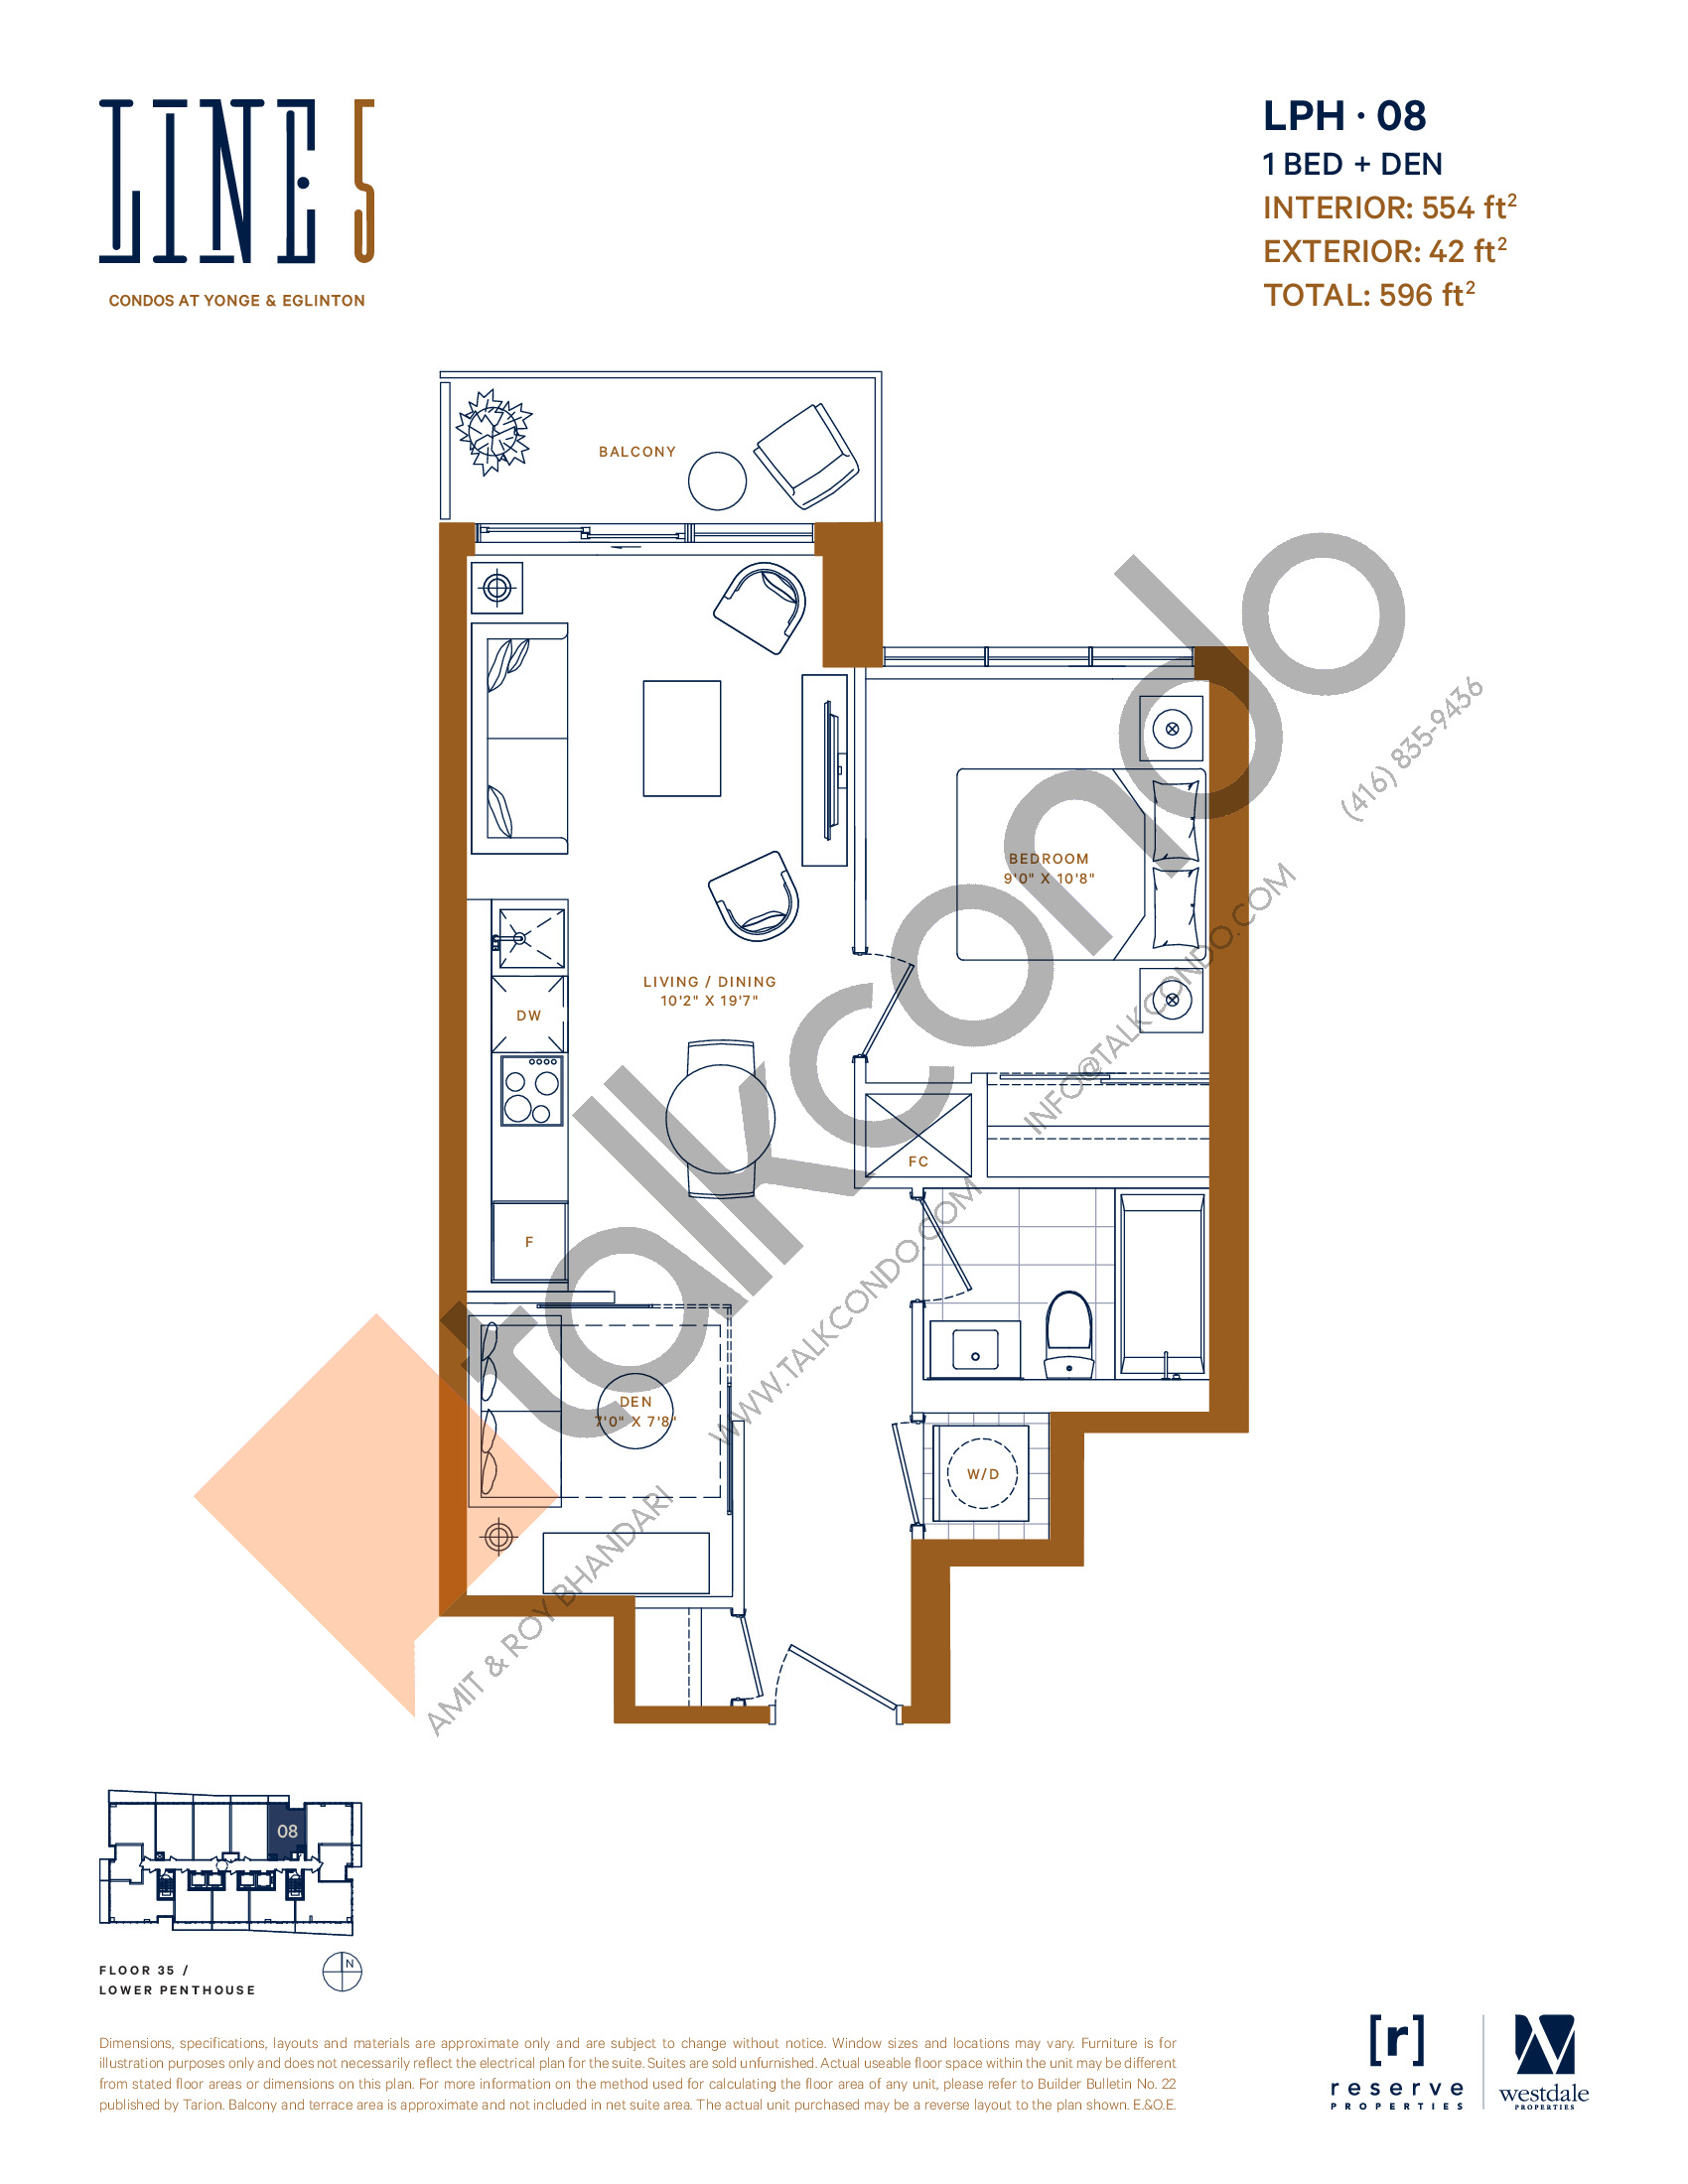 LPH-08 Floor Plan at Line 5 South Tower Condos - 554 sq.ft